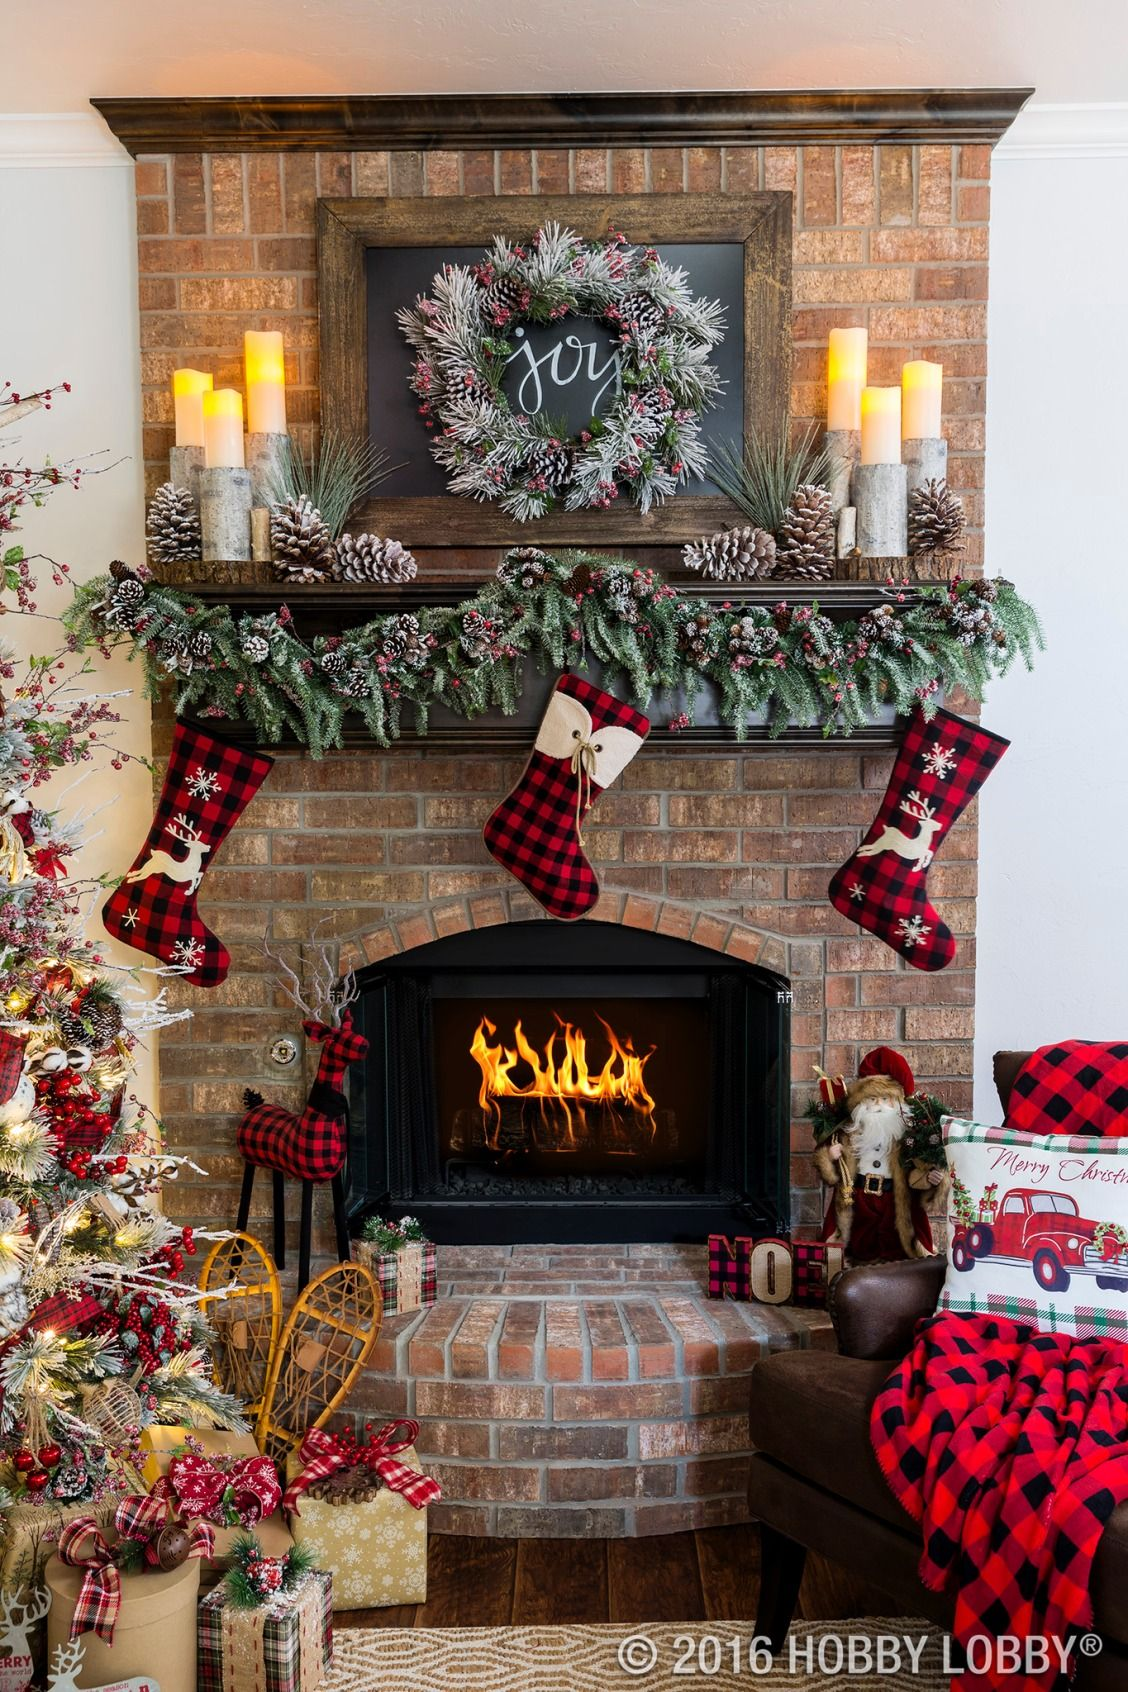 cozy cabin charm meets traditional holiday by coupling warm and rustic accent pieces with elegant christmas decor - How To Decorate A Fireplace For Christmas